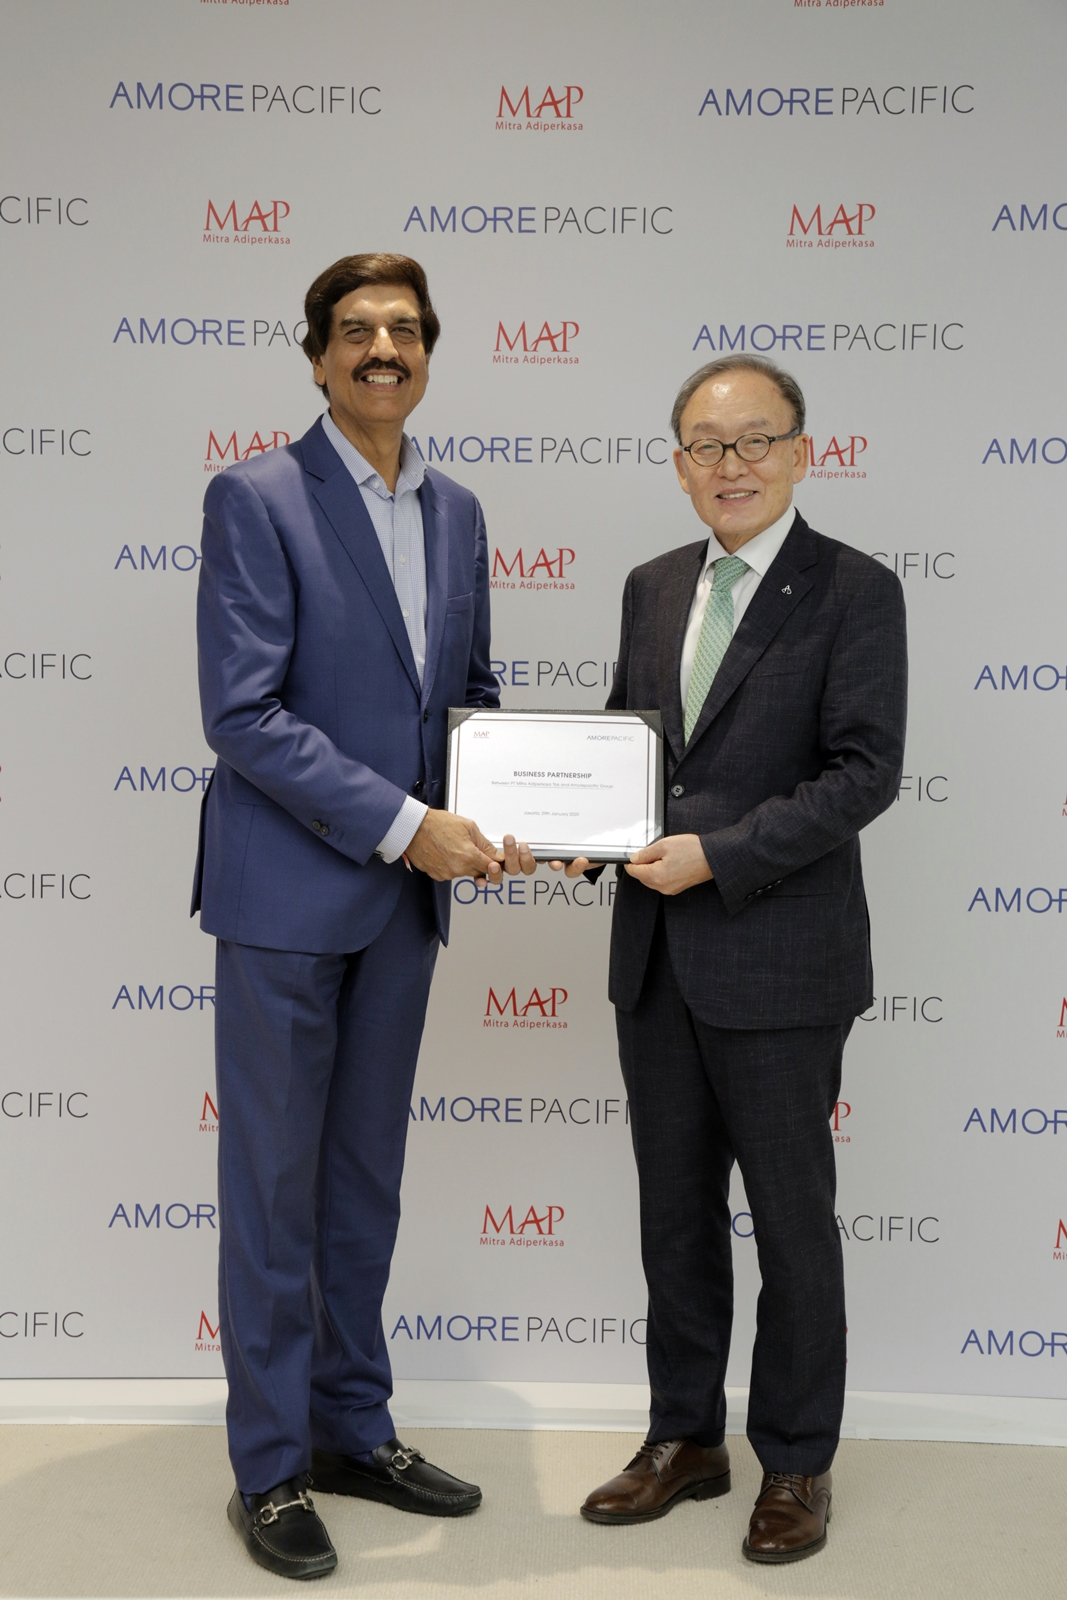 Amorepacific President Bae Dong-hyun (right) and MAP Group CEO Virendra Sharma pose after signing a business partnership at the MAP headquarters in Jakarta, Indonesia, on Wednesday. (Amore Pacific)